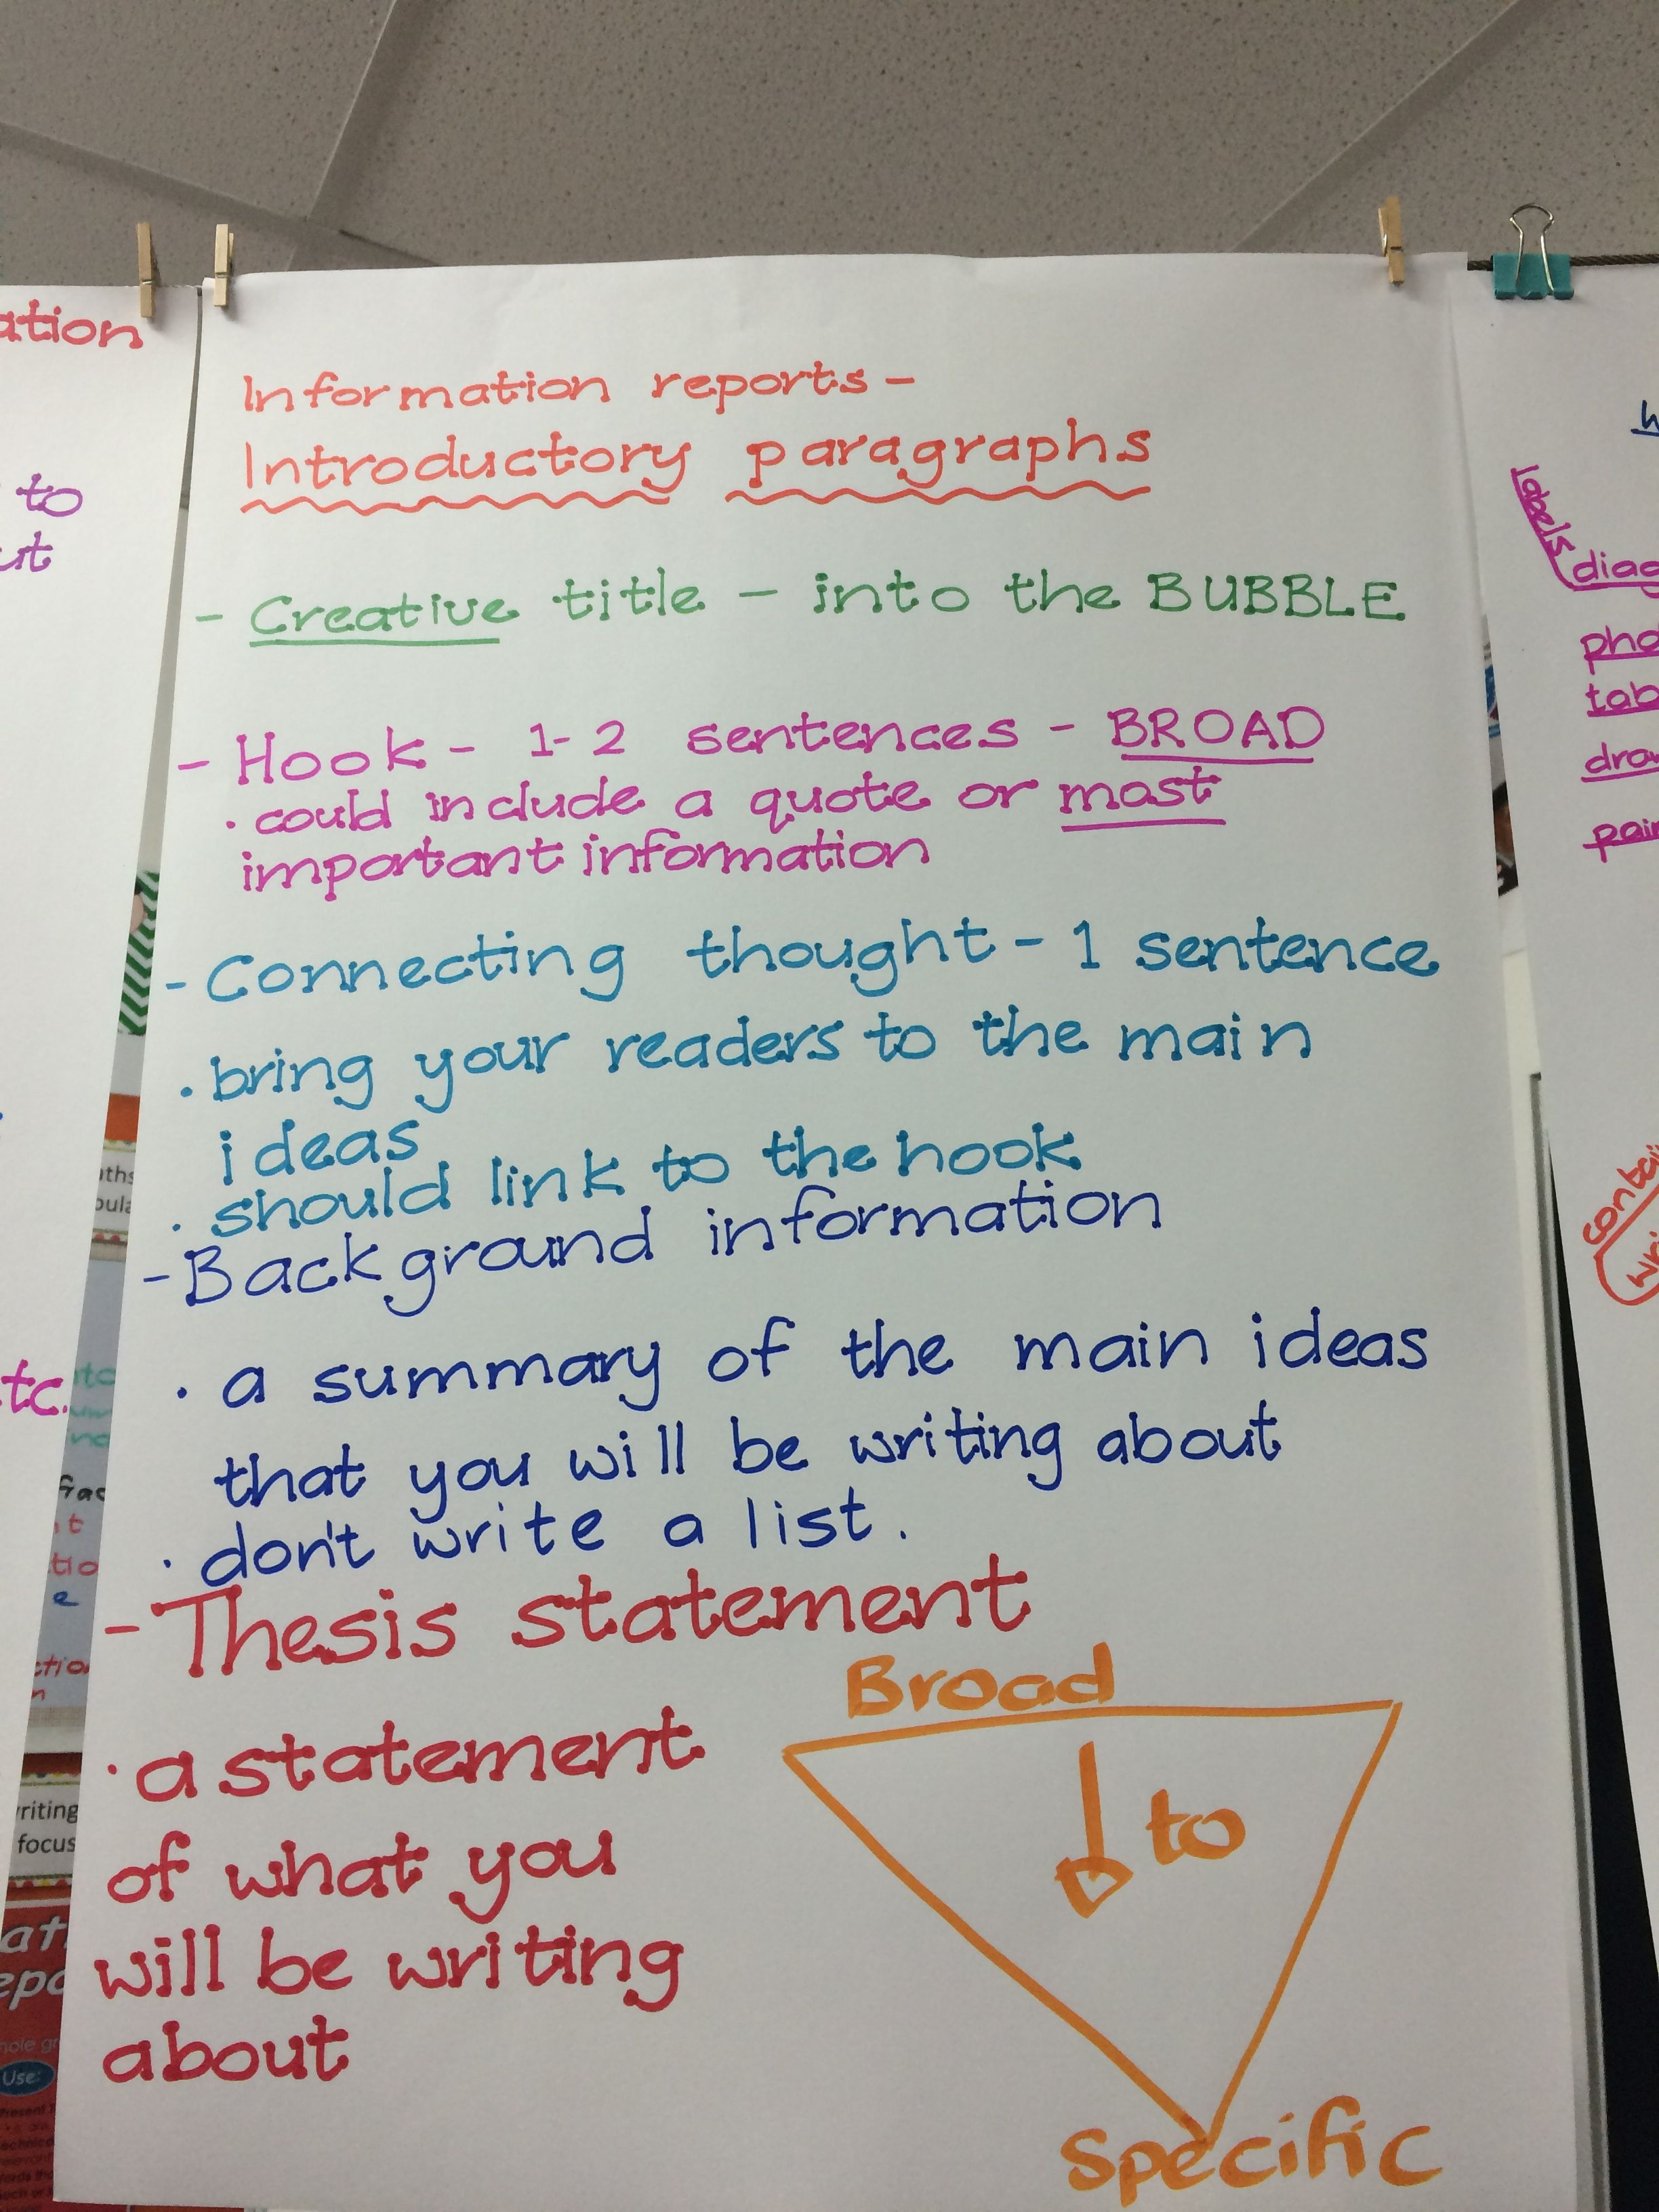 How to structure an introductory paragraph (information reports